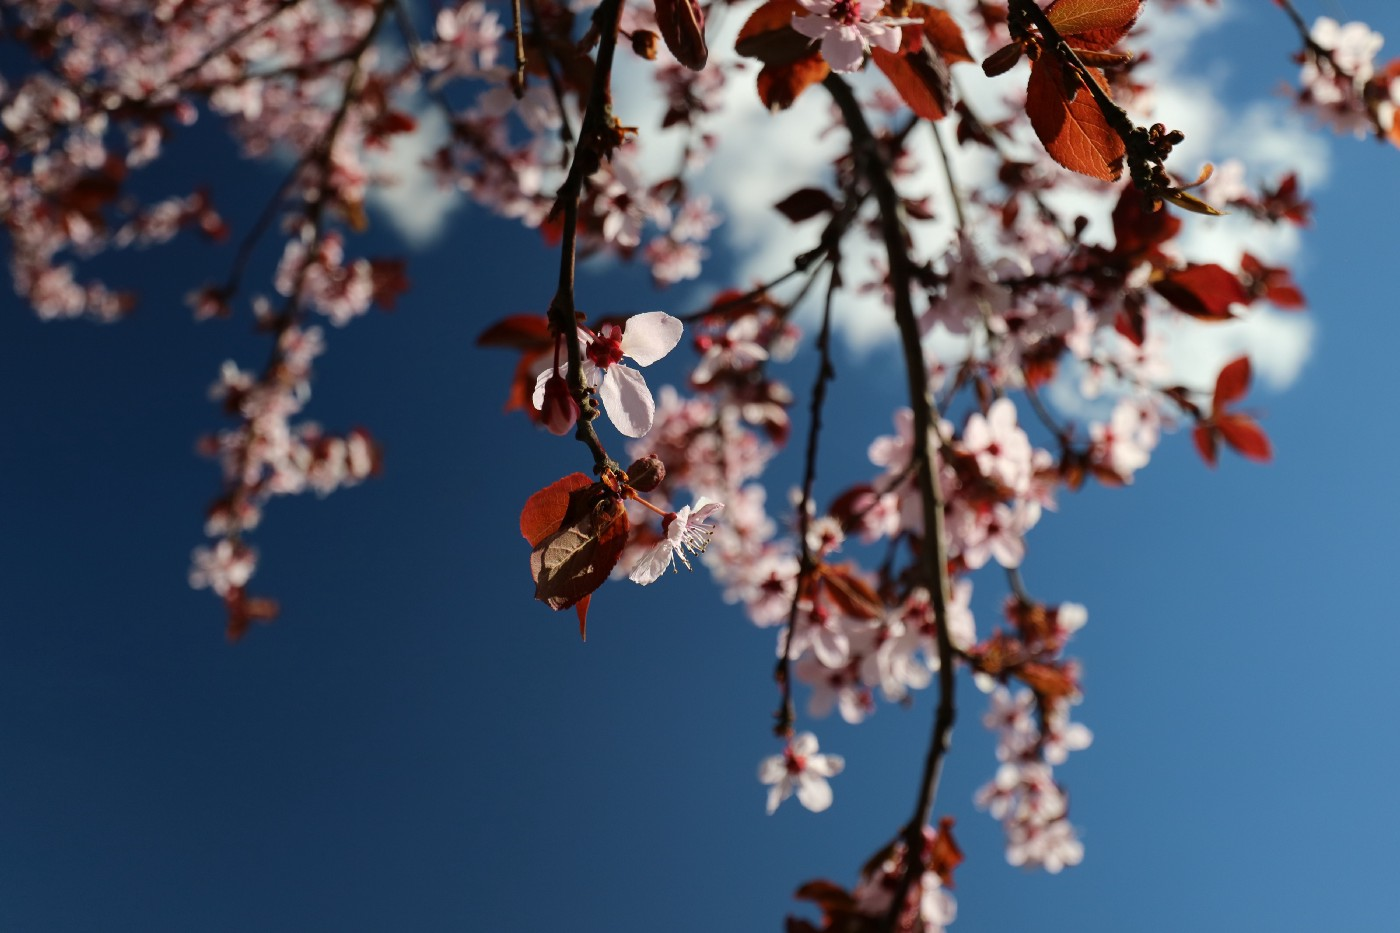 Dainty pink cherry blossoms against a blue sky.